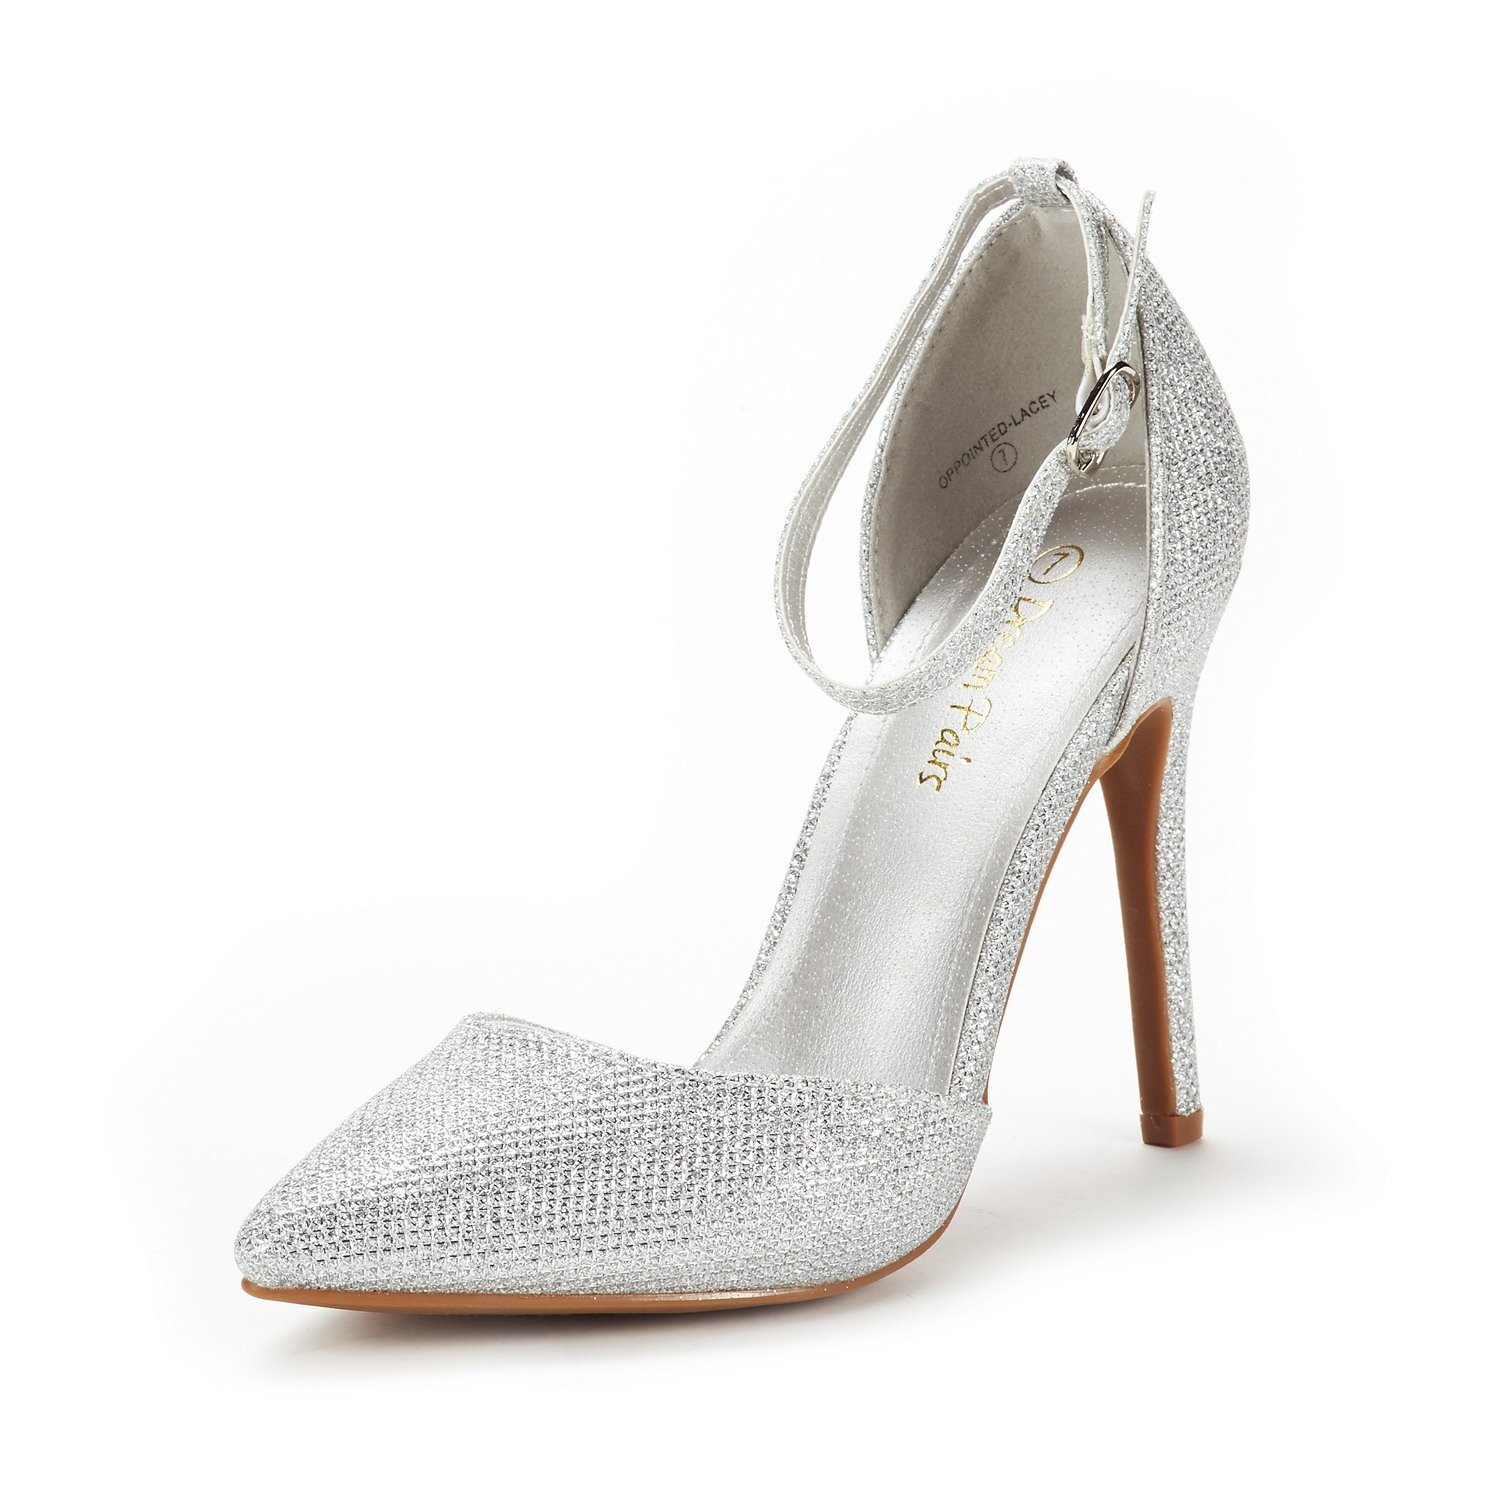 DREAM PAIRS Women's Oppointed-Lacey Silver Glitter Fashion Dress High Heel Pointed Toe Wedding Pumps Shoes Size 6.5 M US